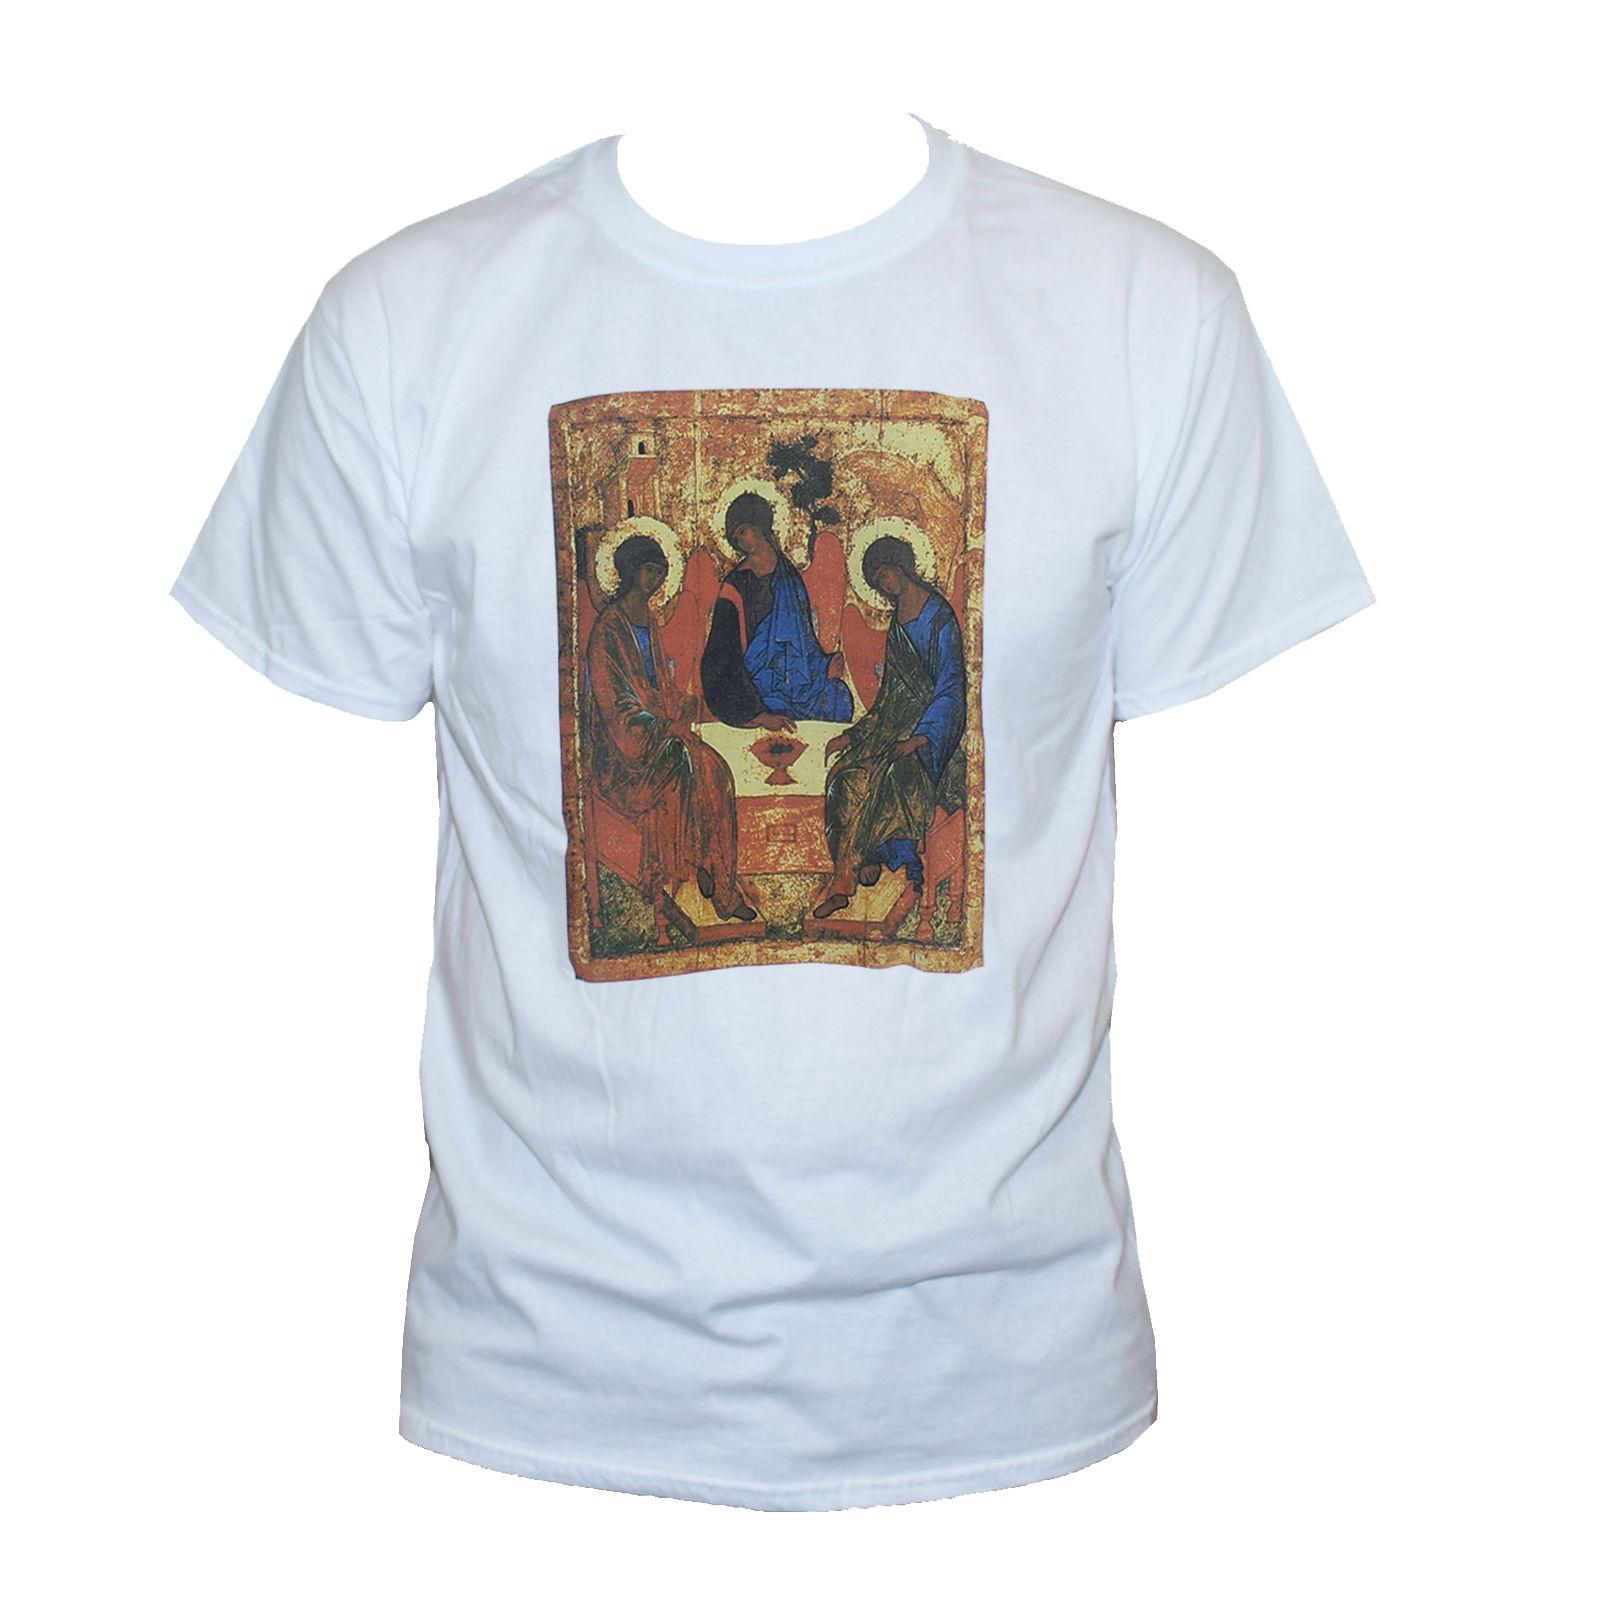 b019164d9 Andrei Rublev Trinity T Shirt Russian Christian Art Jesus Christ Graphic  Tee Tees Custom Jersey T Shirt Graphic T Shirt Design Own T Shirt From  Tongcup, ...